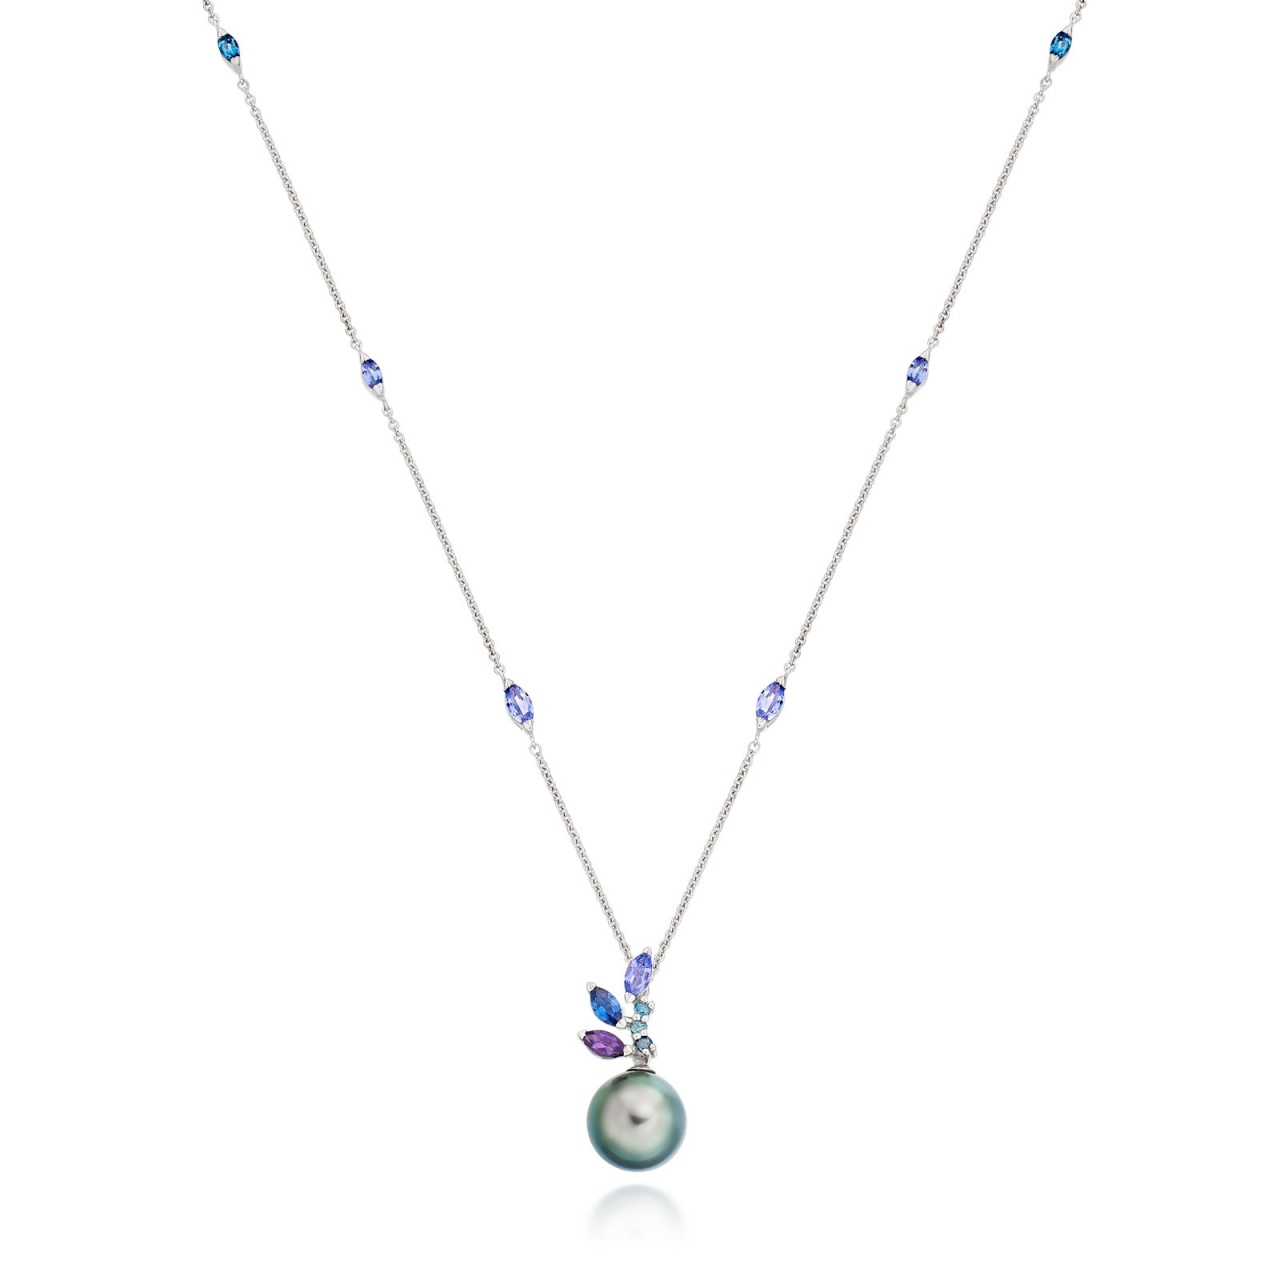 Enchanted Lagoon Pendant in White Gold-TPPRWG0897-1